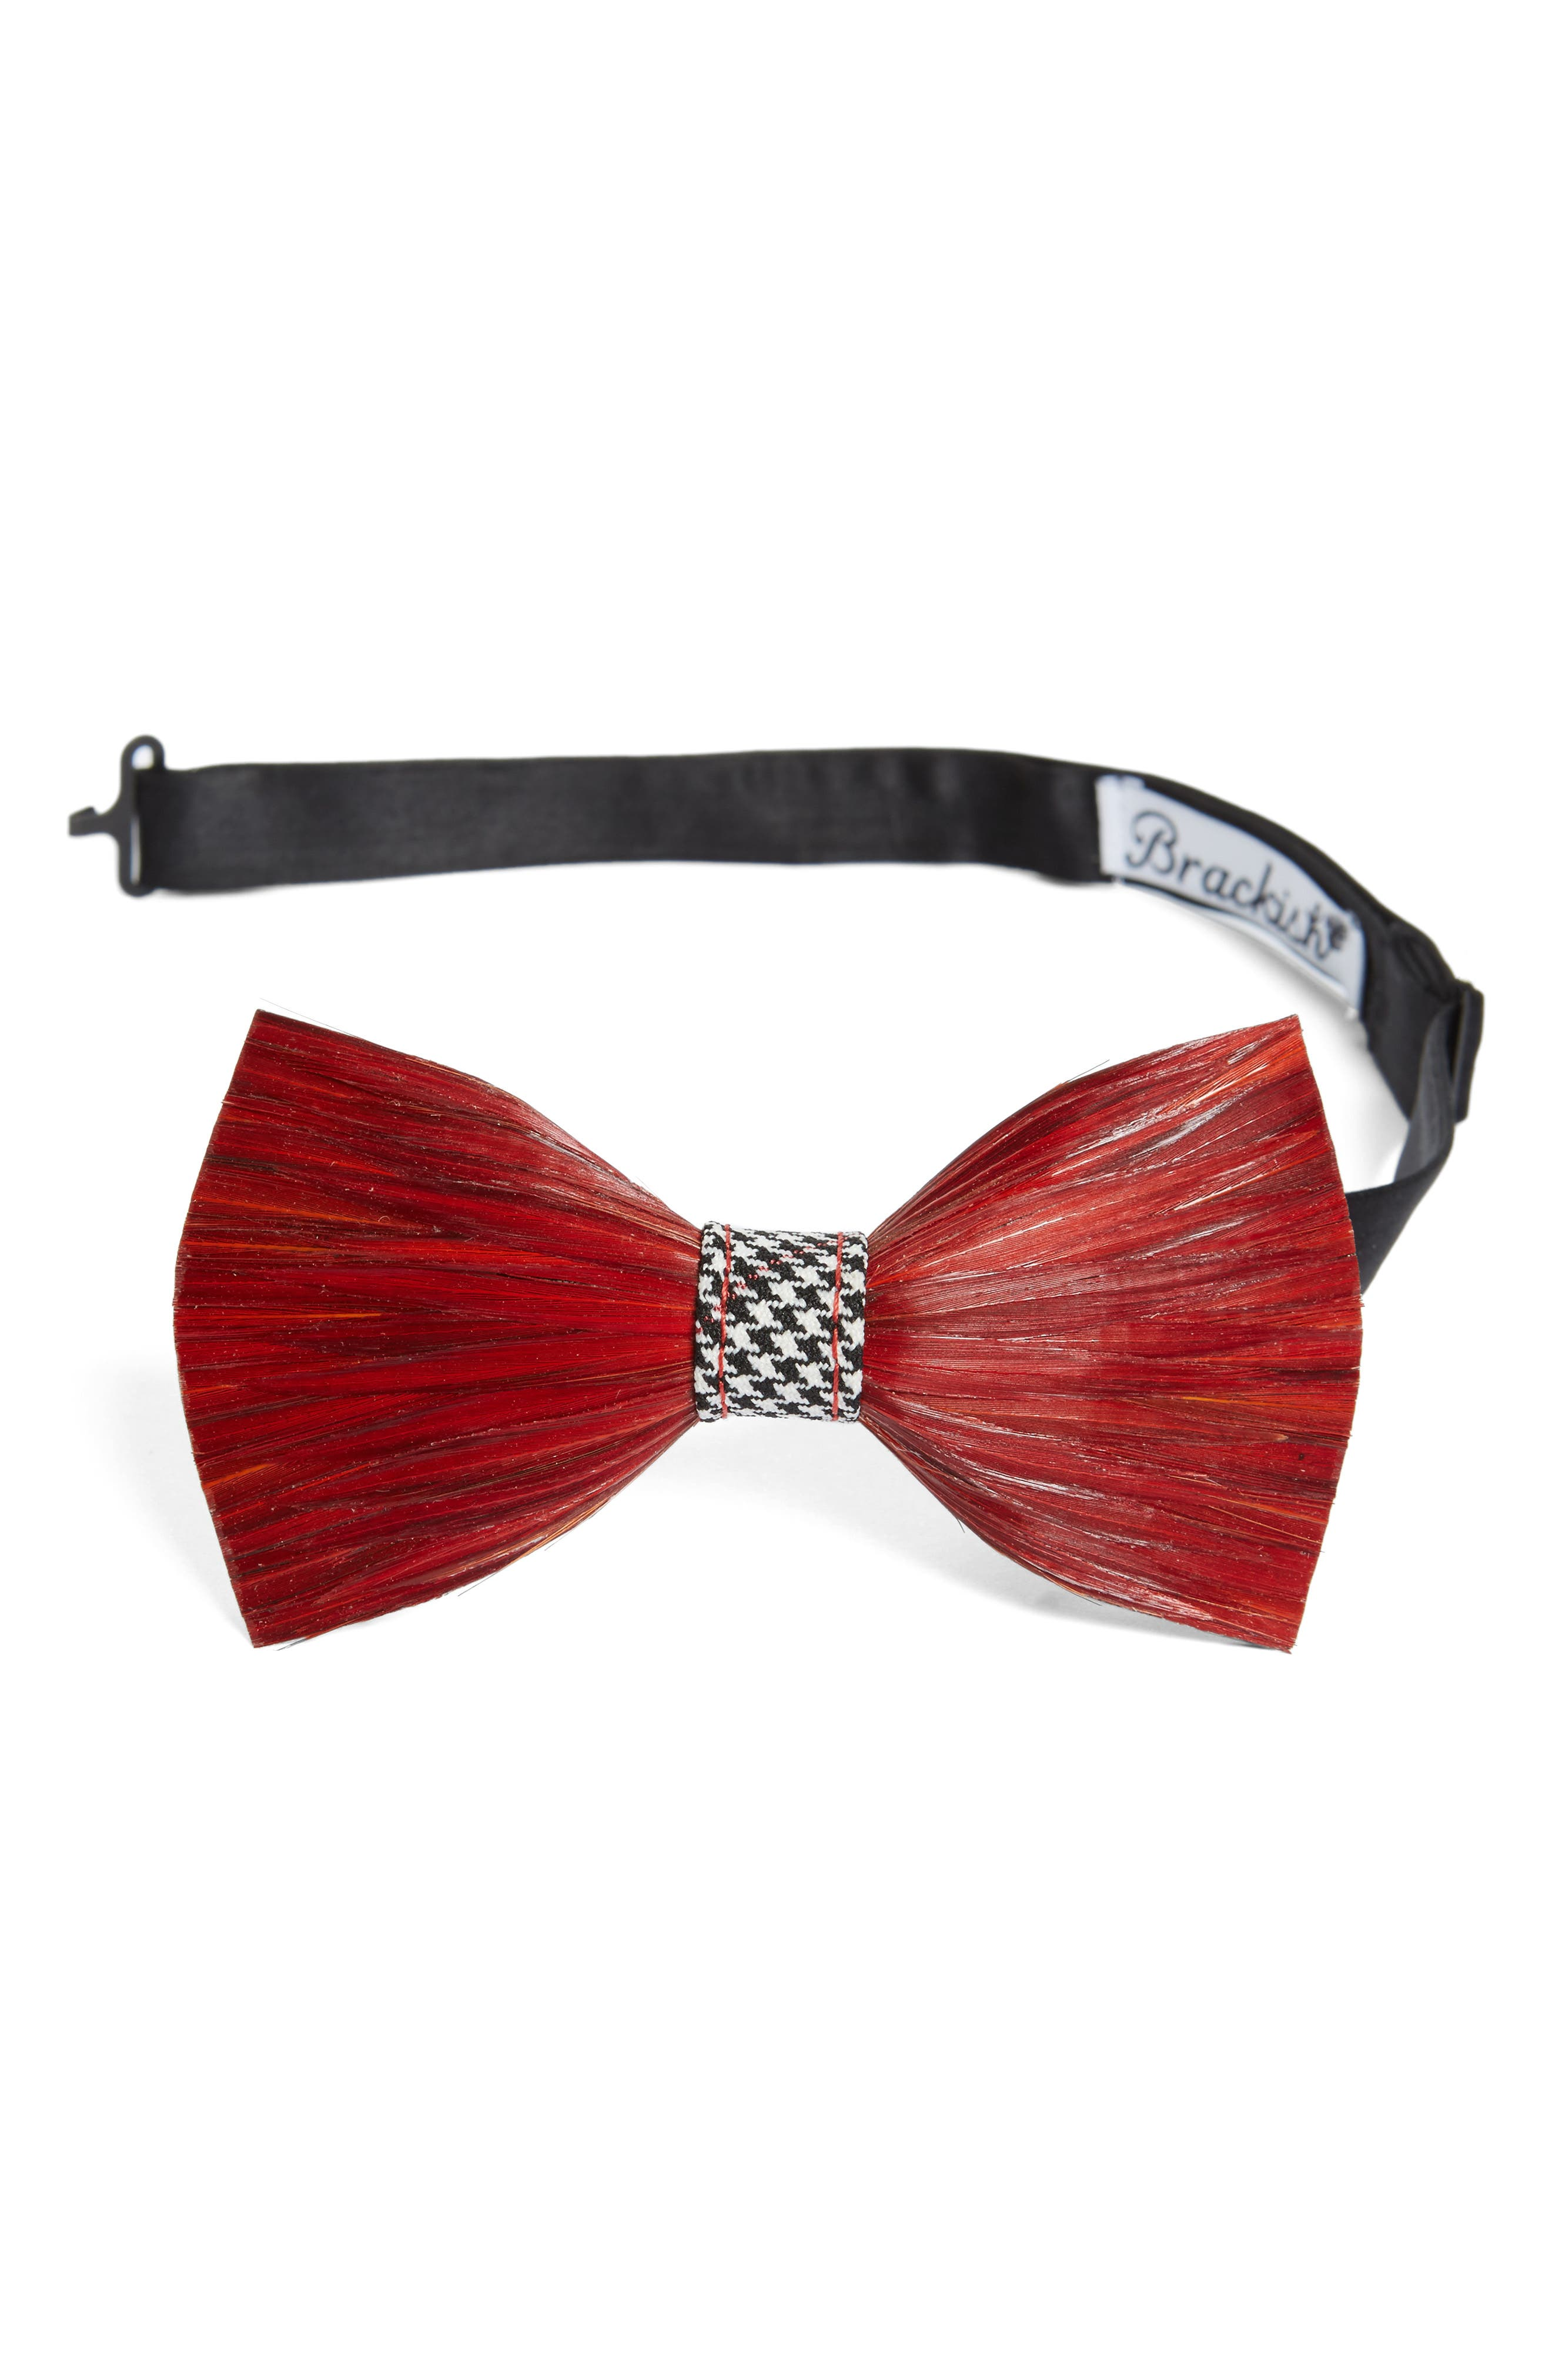 BRACKISH AND BELL Brackish & Bell Hound Feather Bow Tie